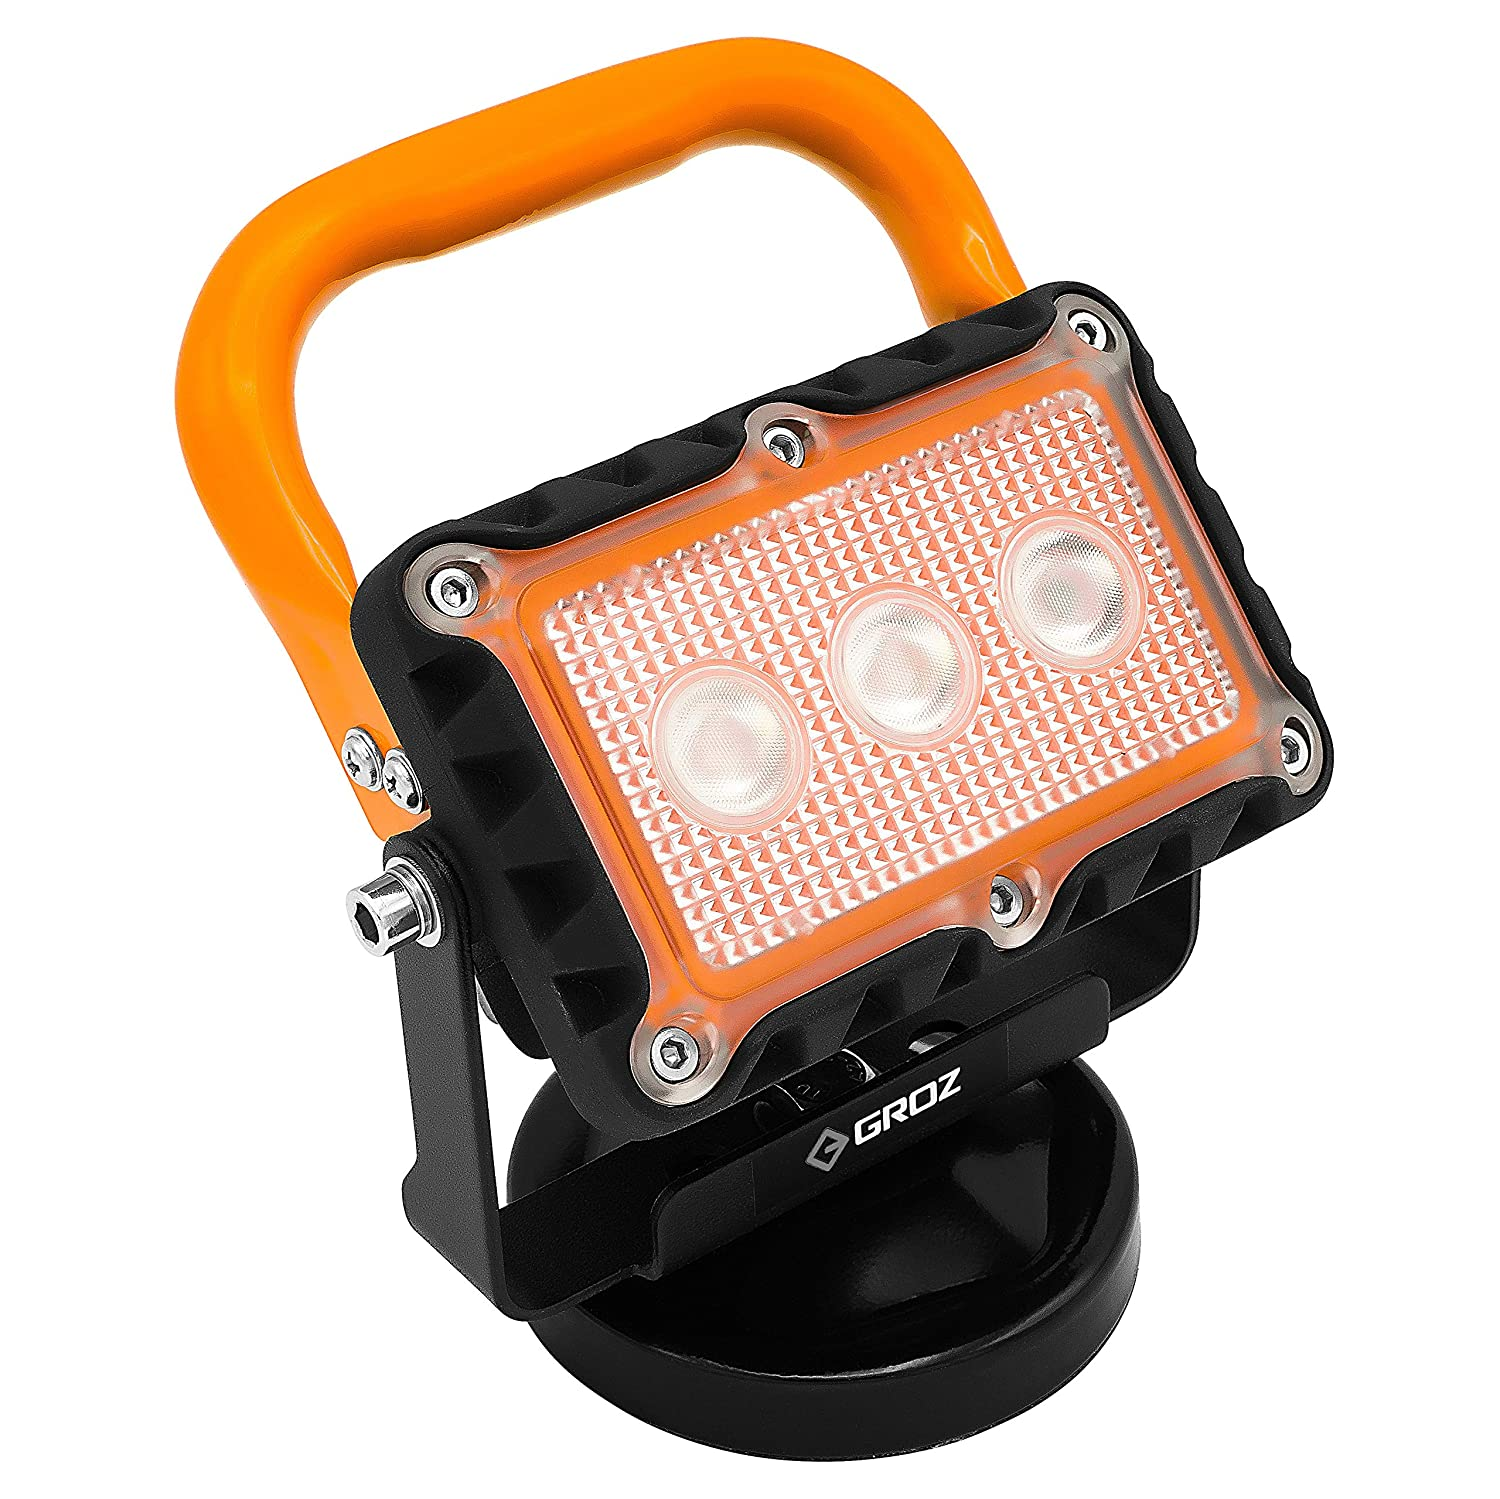 USB Charger IP65 Water /& Dust Proof Rating 55036 GROZ 500 Lumen LED Rechargeable Site Lamp with Magnetic Base 3.7V Li-Ion Battery 270/° Rotation